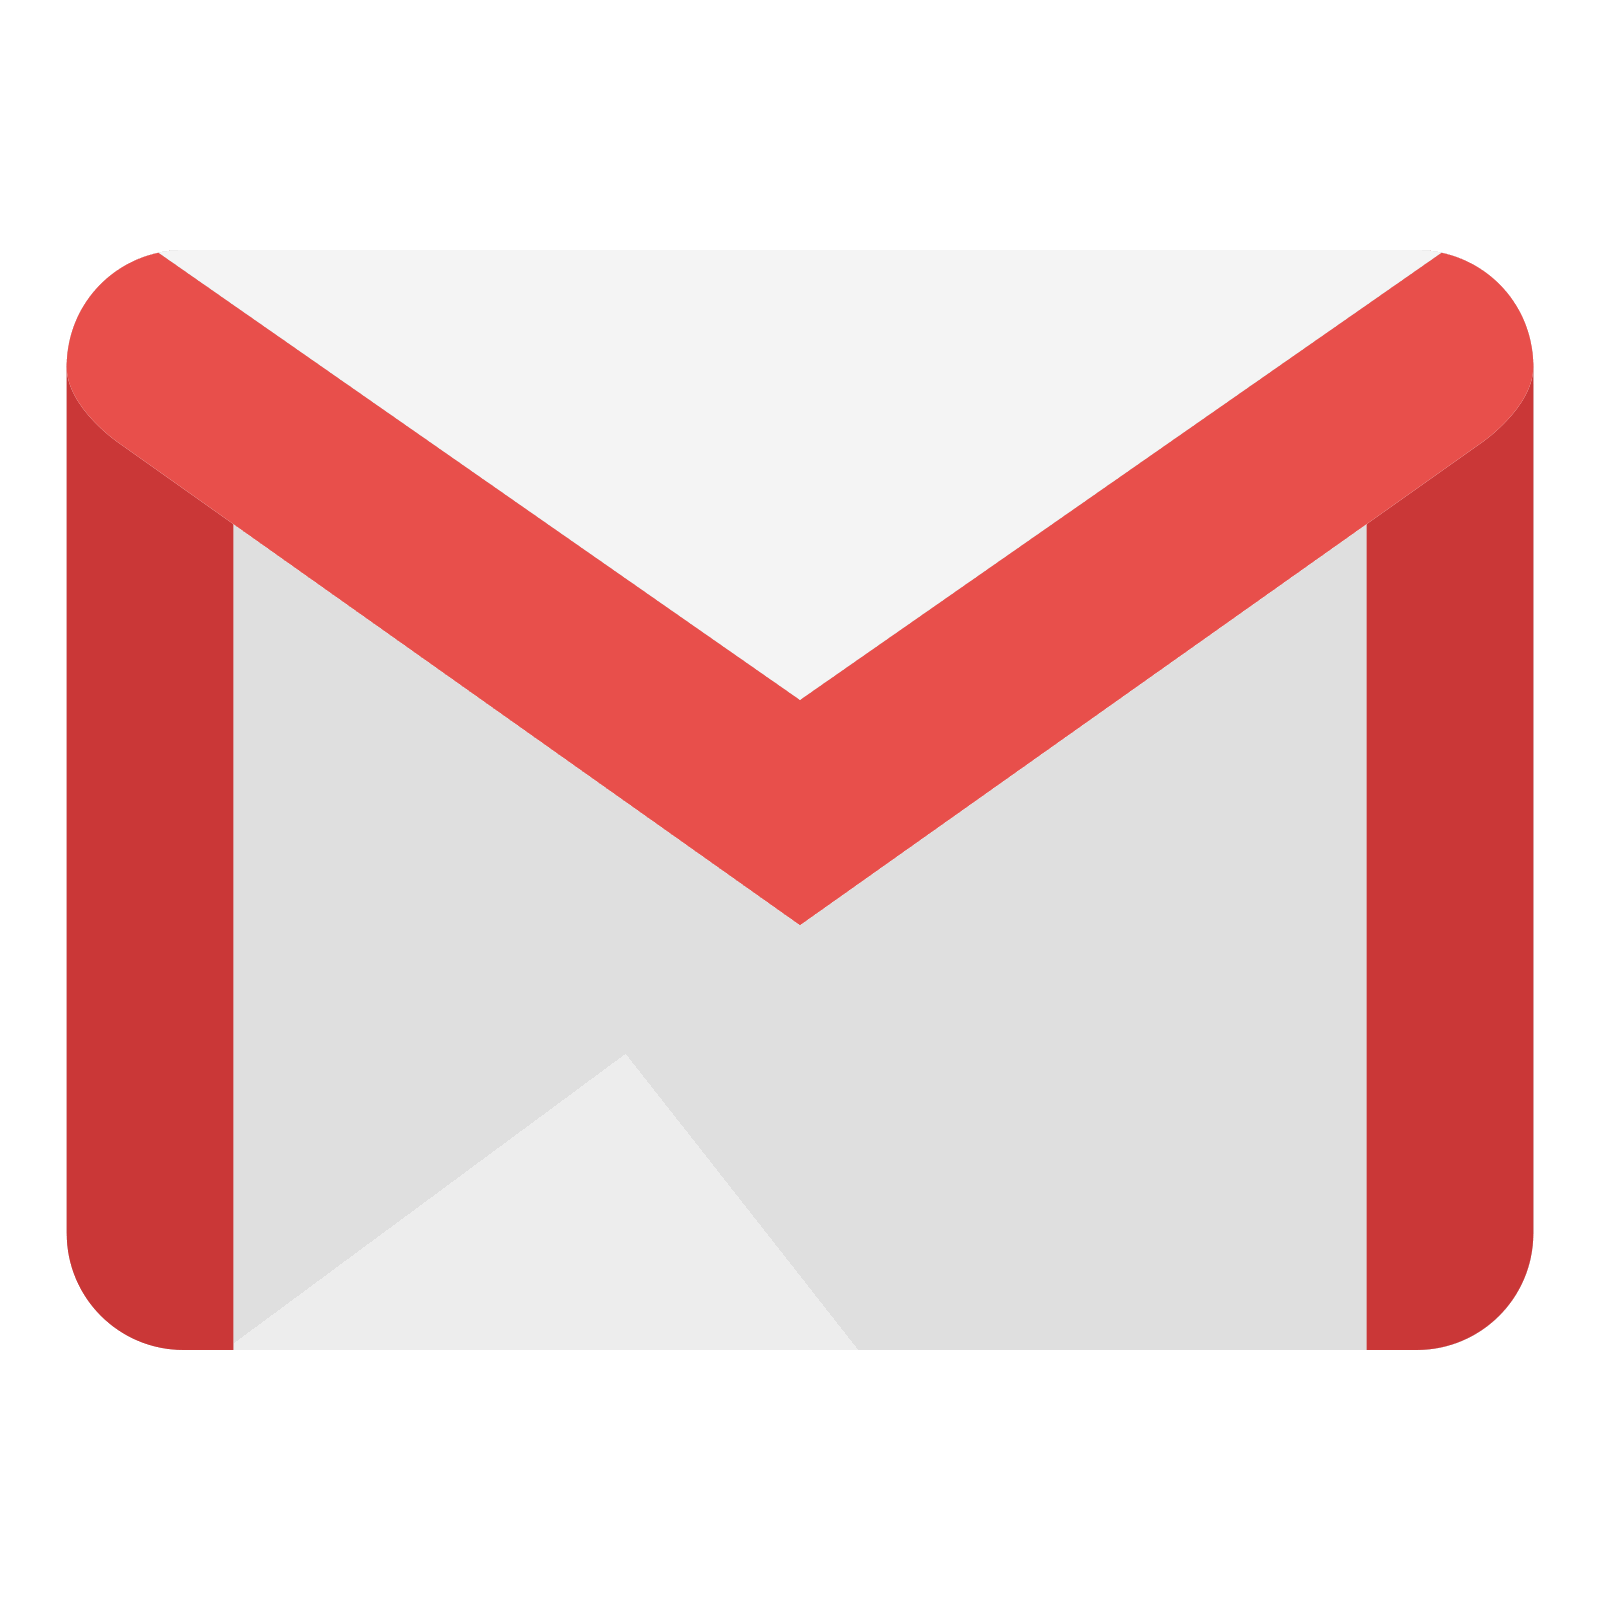 Gmail Vector PNG